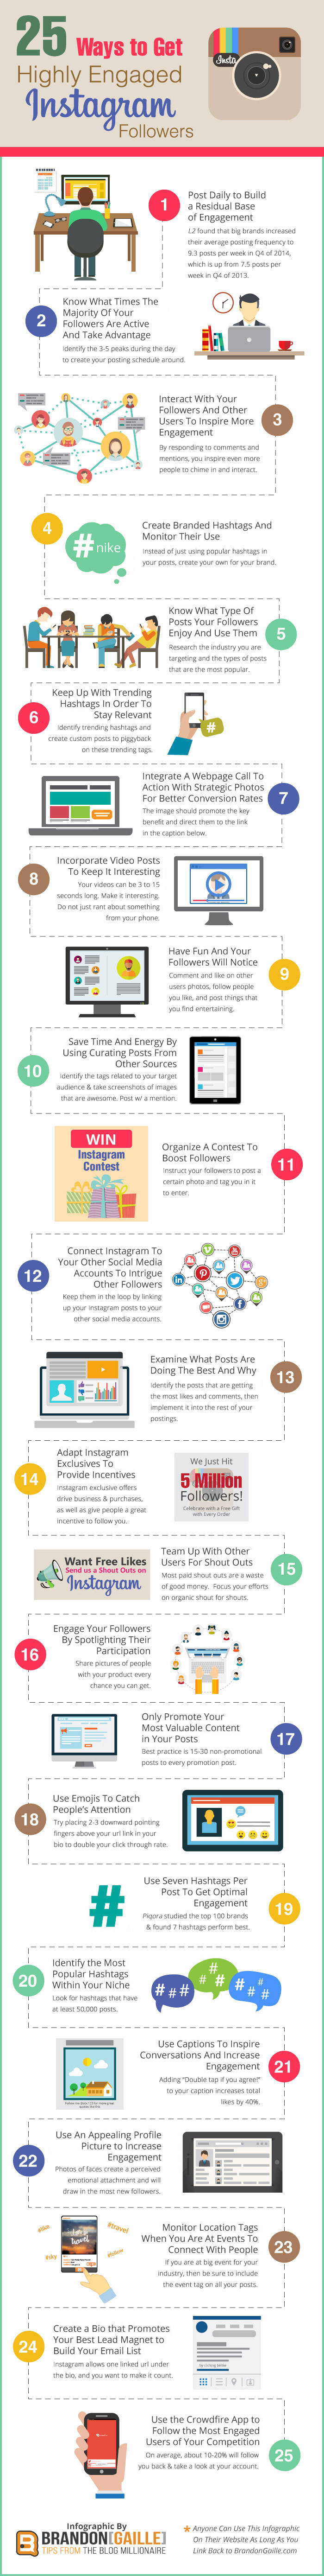 Infographic: 25 Ways To Get Highly Engaged Instagram Followers